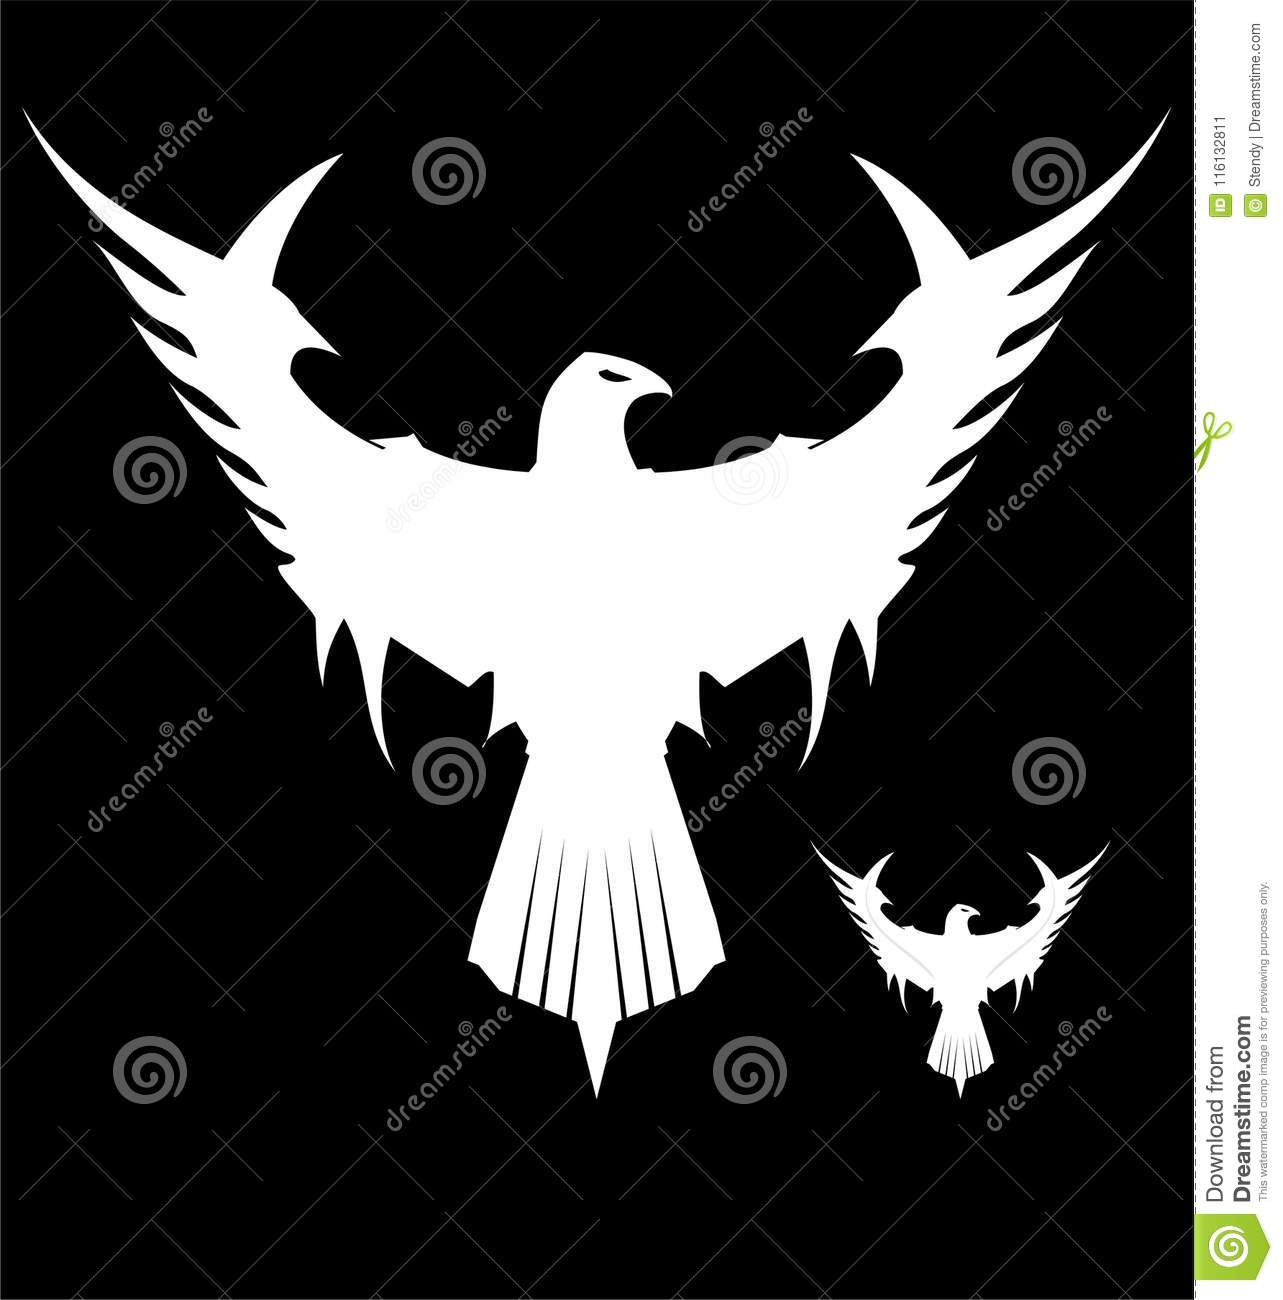 Beautiful Great White Eagle Mascot On Black Background Stock Vector Illustration Of Hawk Aggression 116132811